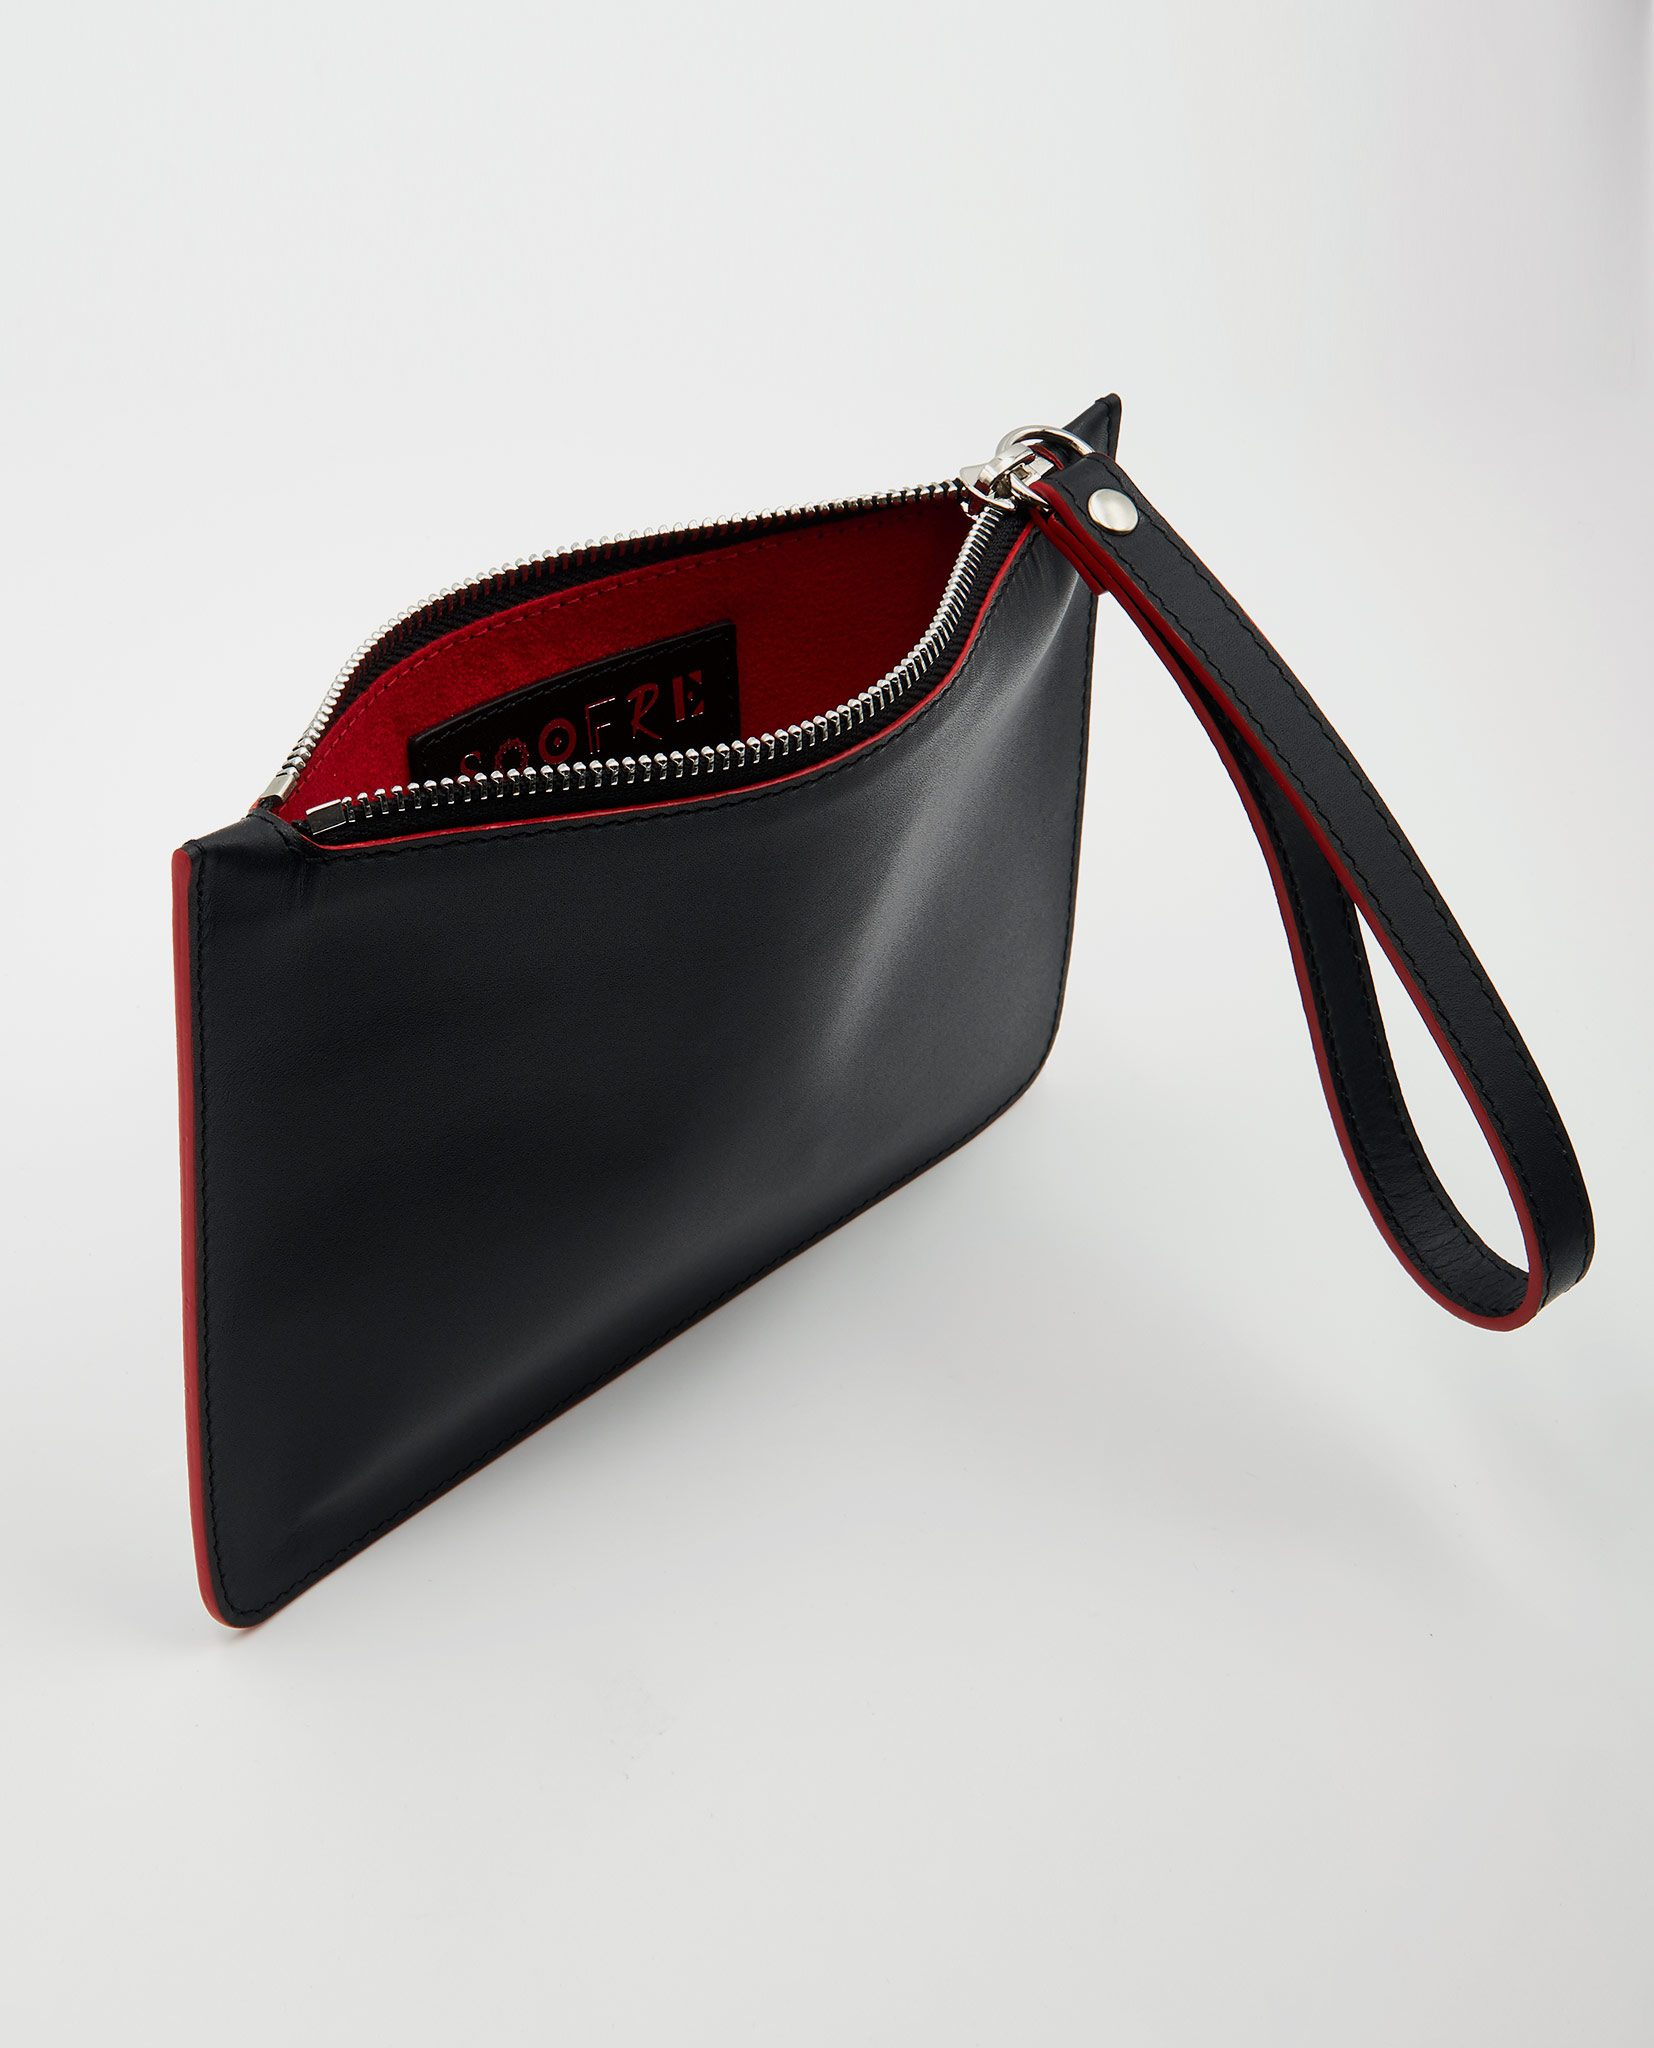 Soofre_Small-Pouch_black-red_2